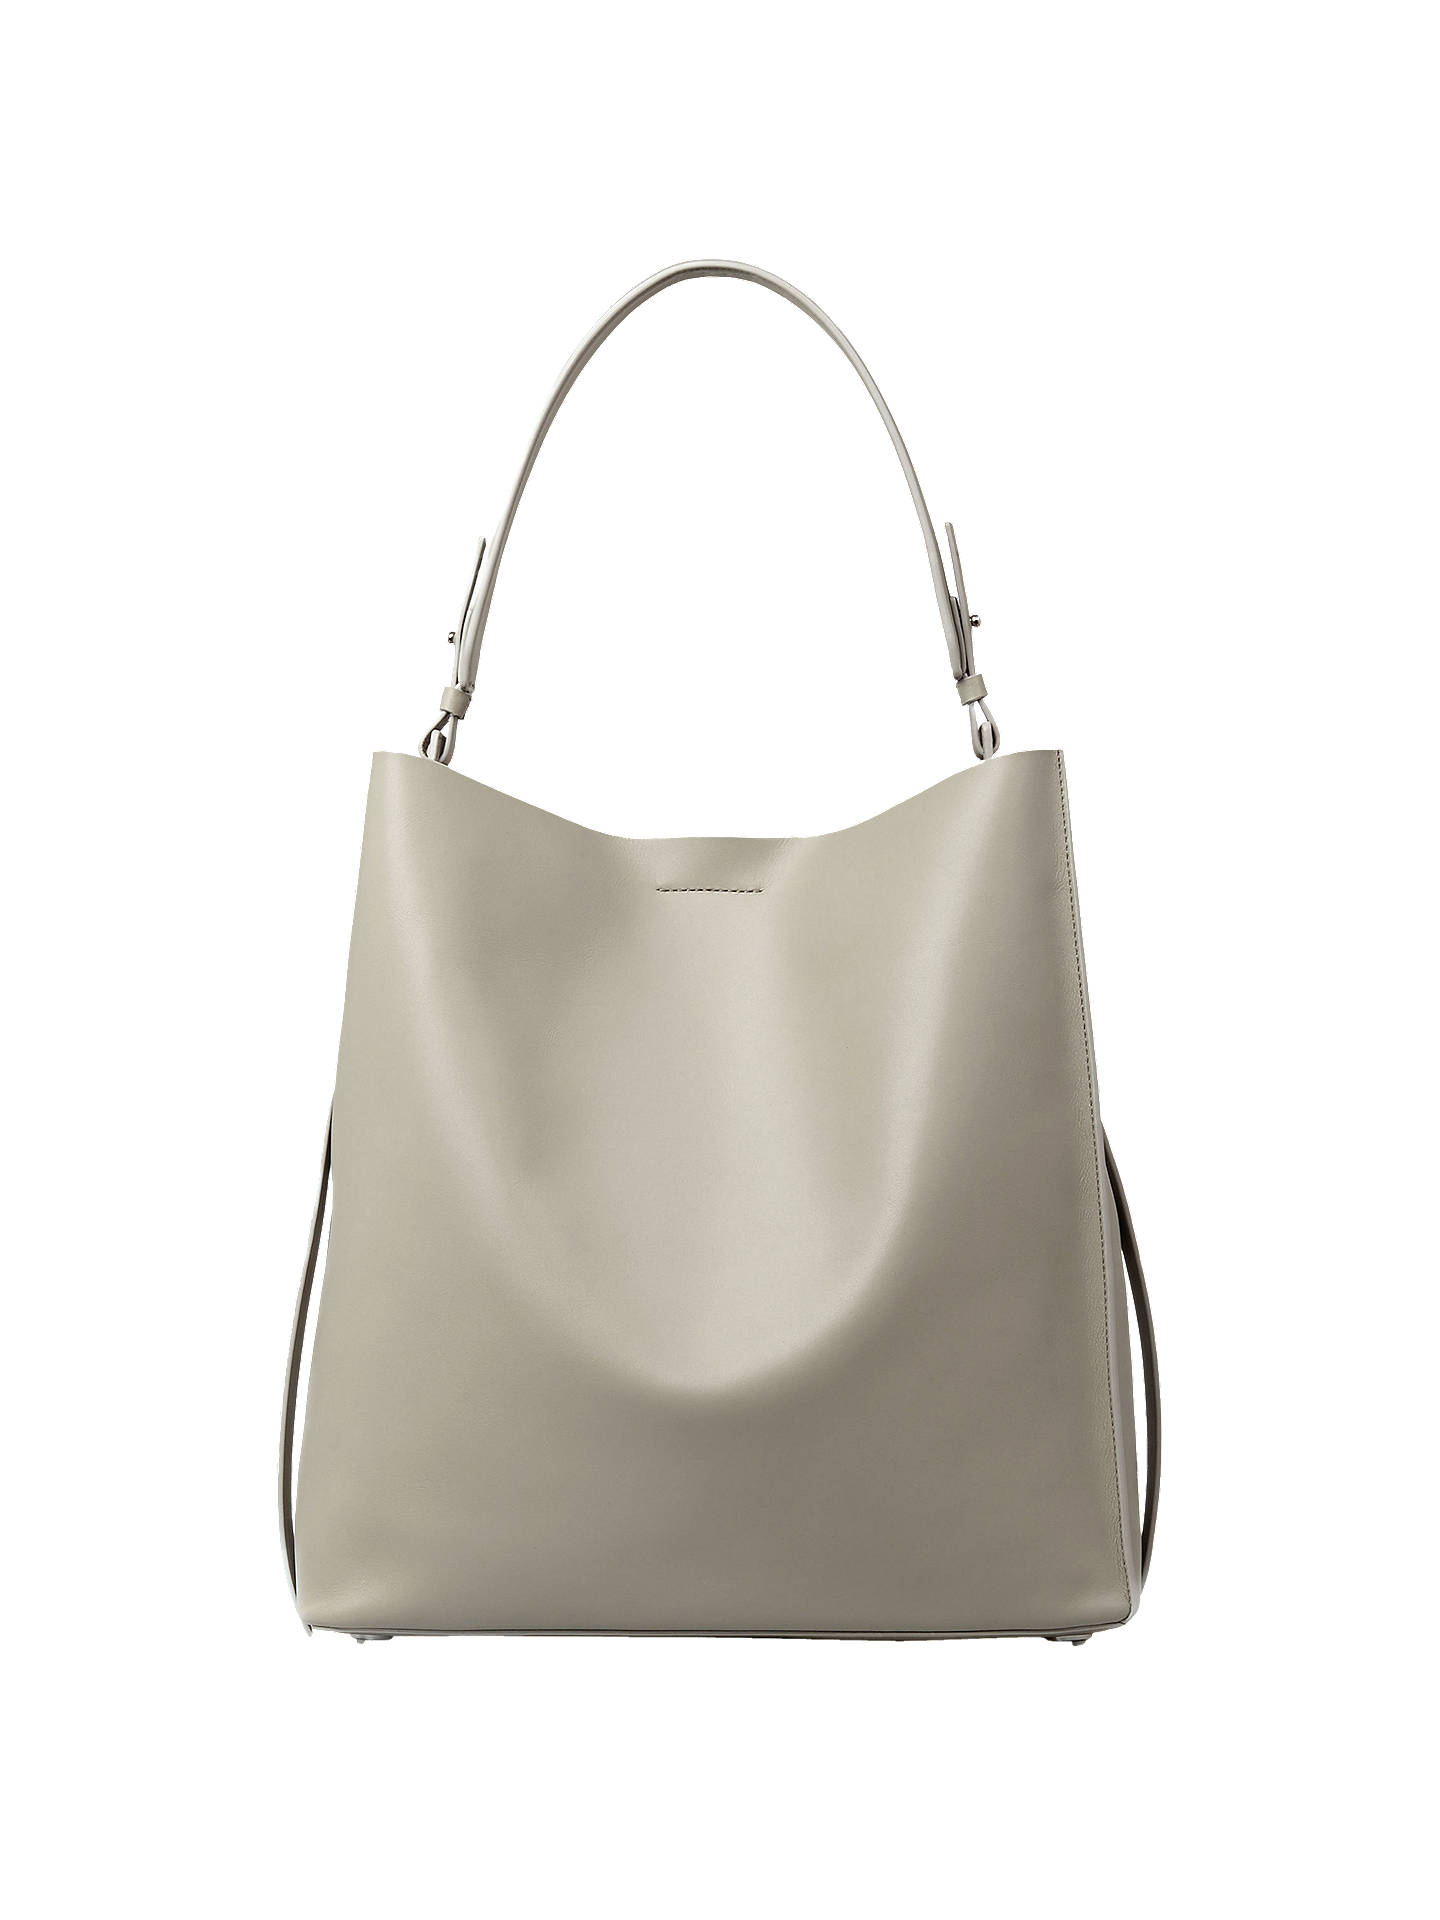 Buy AllSaints Paradise Leather North South Tote Bag, Light Cement Grey Online at johnlewis.com